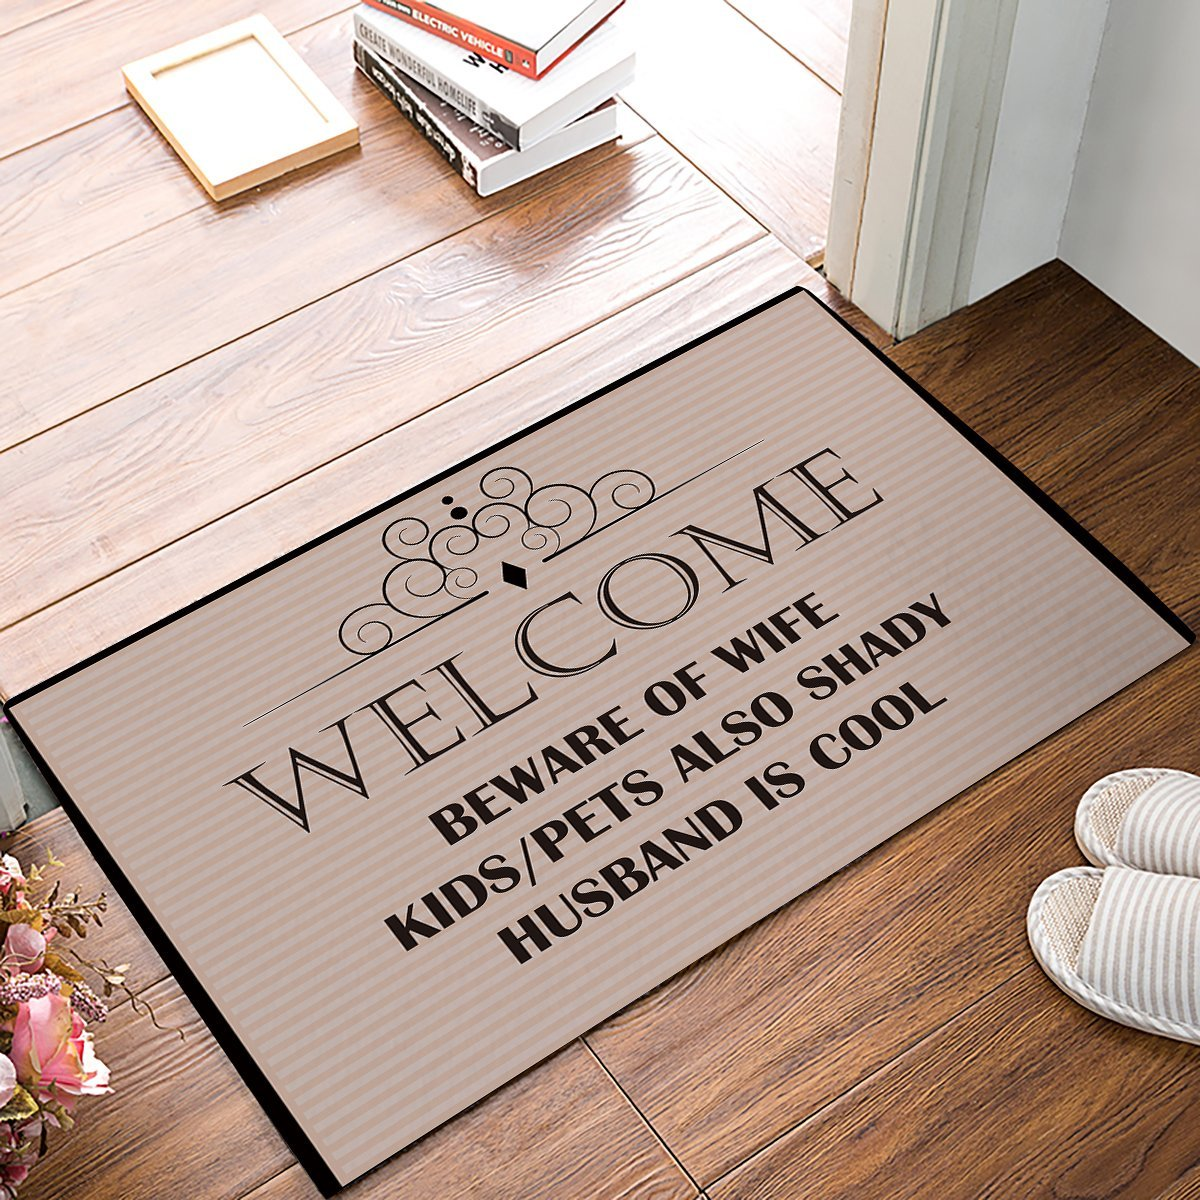 Beware Of Wife Kids Pets Also Shady Husband Is Cool - Beige Door Mats Kitchen Floor Bath Entrance Rug Mat Indoor Bathroom image